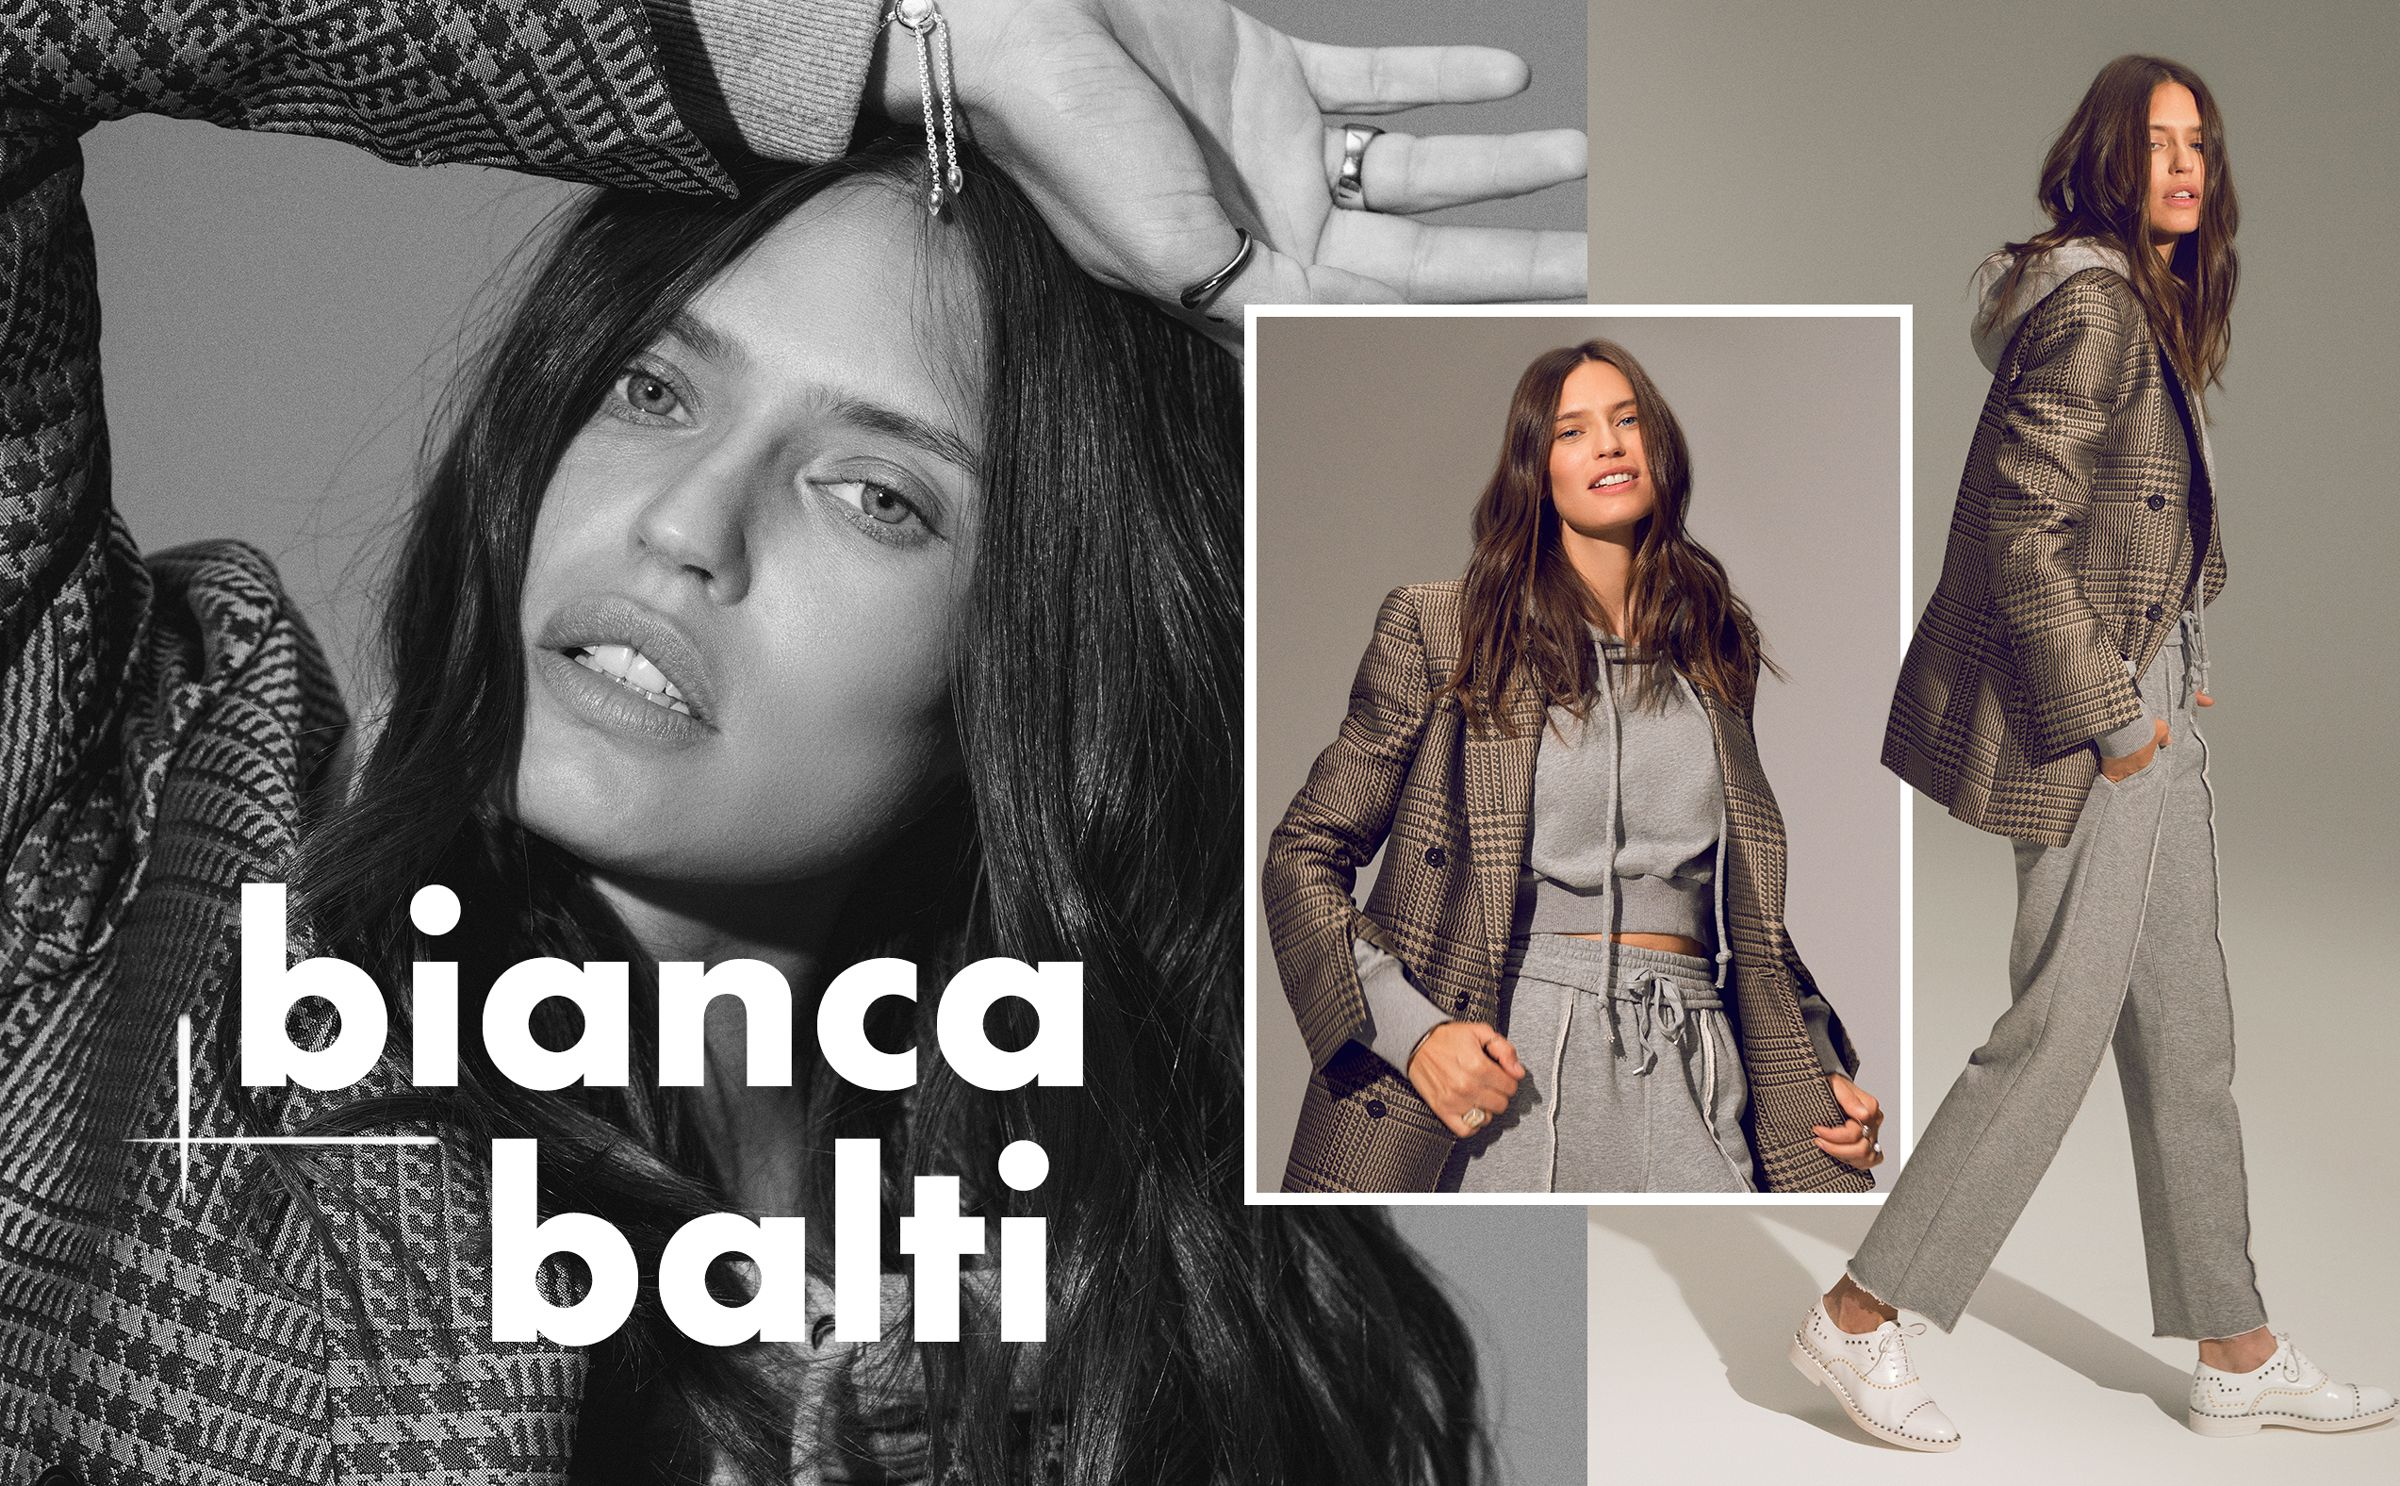 <p><strong>On Bianca Balti:</strong> Hope blazer; Kendall & Kylie top and pants; Zadig & Voltaire shoes; Amanda Pearl rings; Urban Outfitters ring; Monica Vinader bracelet and ring.</p>